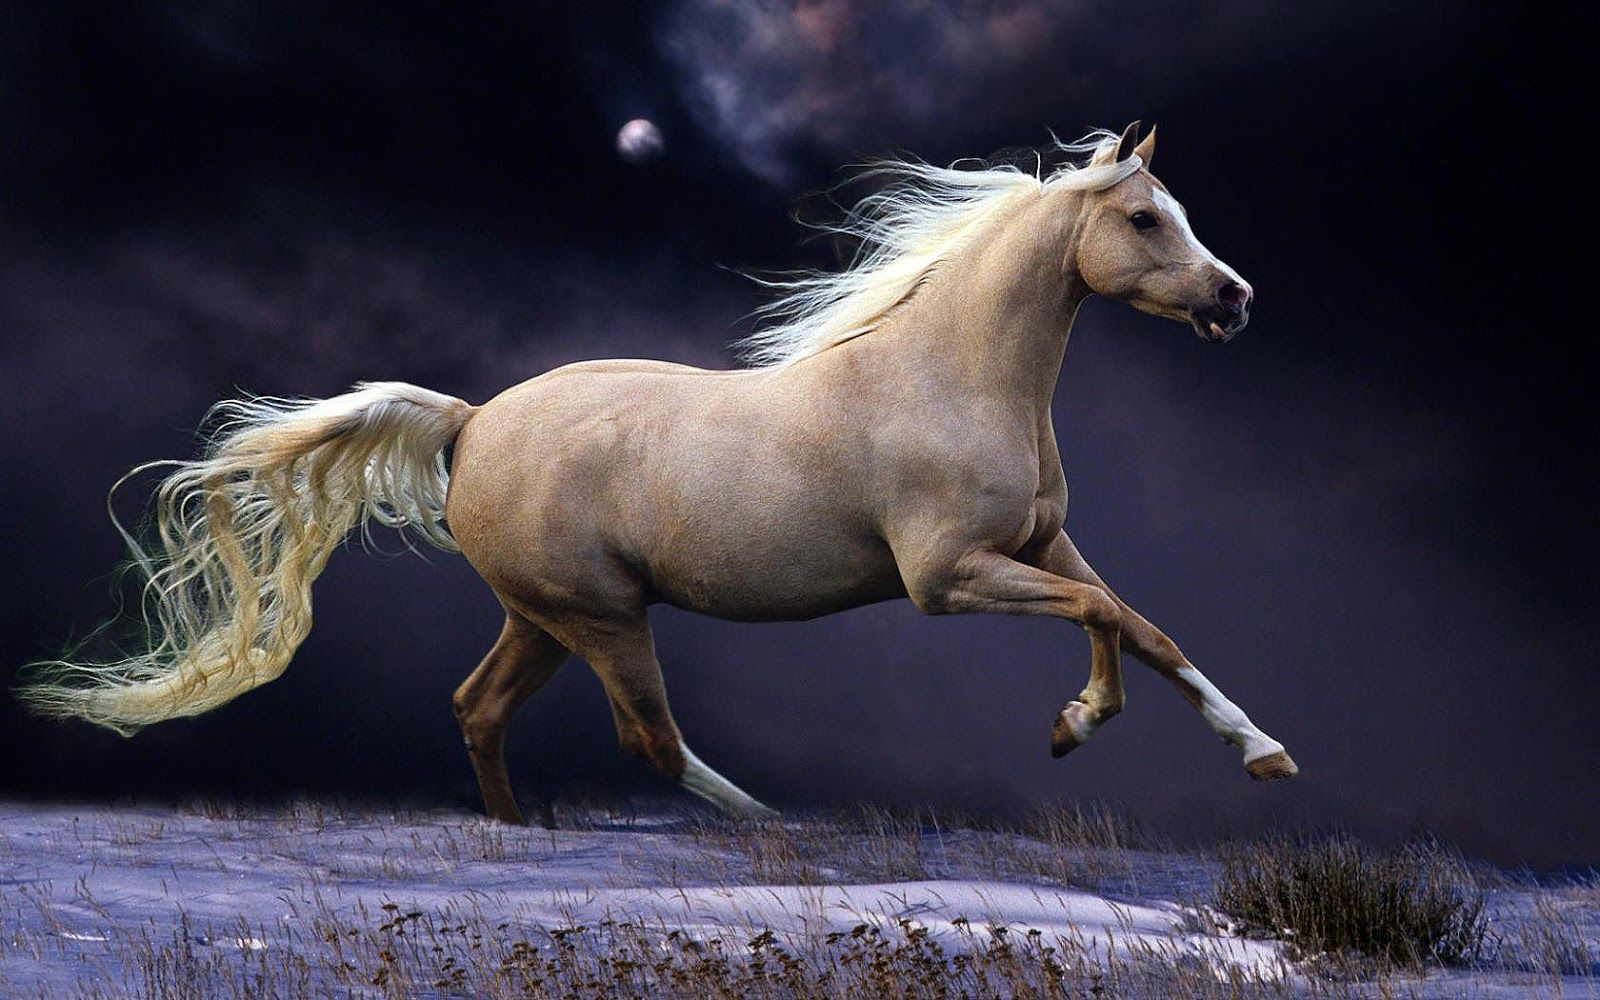 running horse | Horse Portraits | Horse wallpaper, Horses ... - photo#3